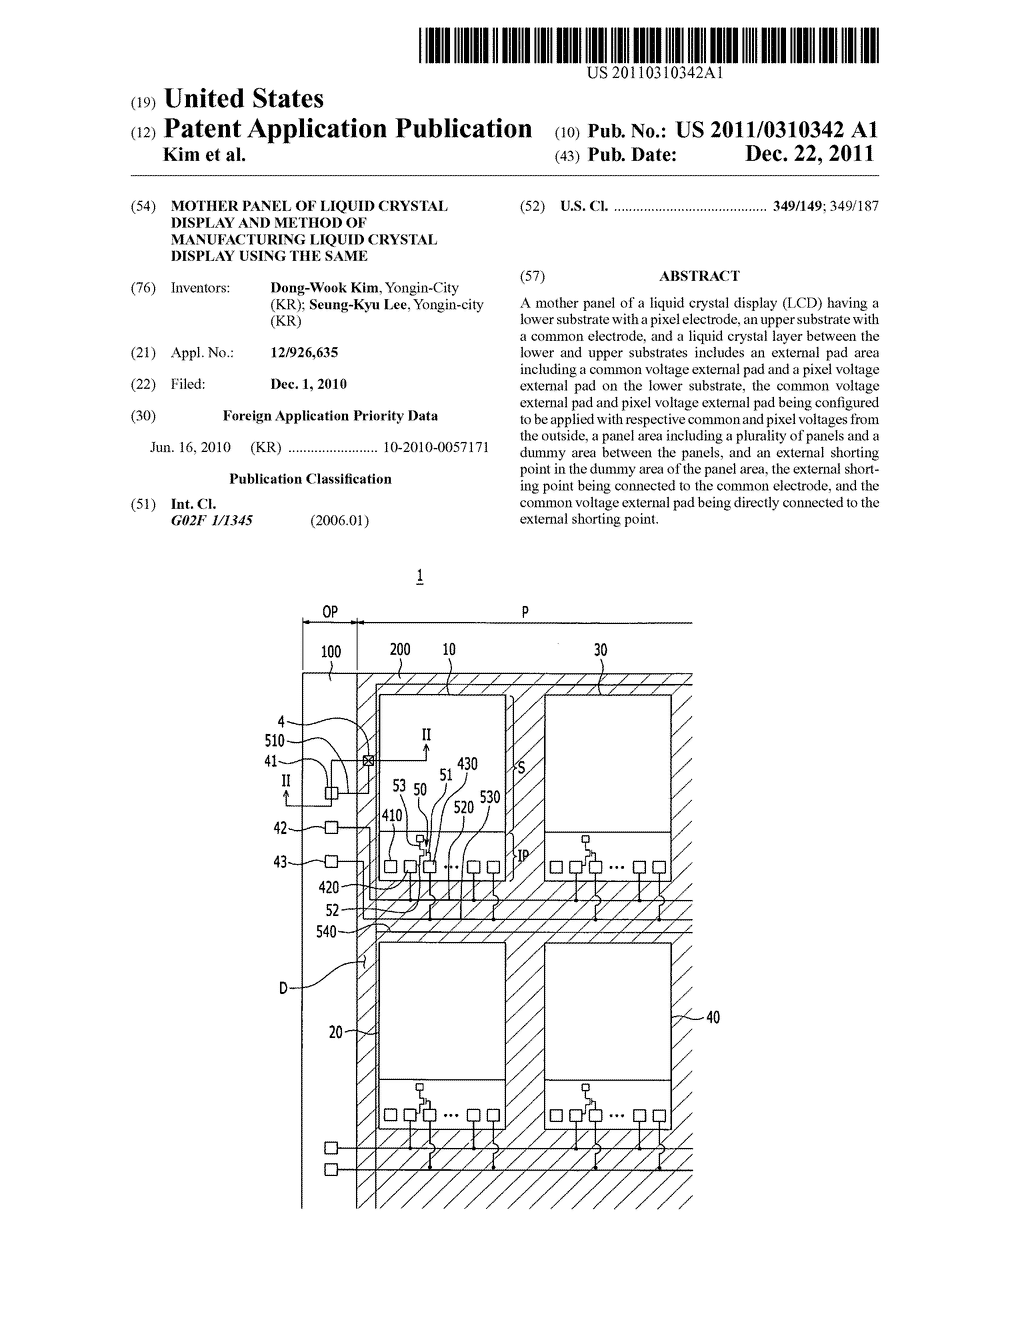 Mother panel of liquid crystal display and method of manufacturing liquid     crystal display using the same - diagram, schematic, and image 01